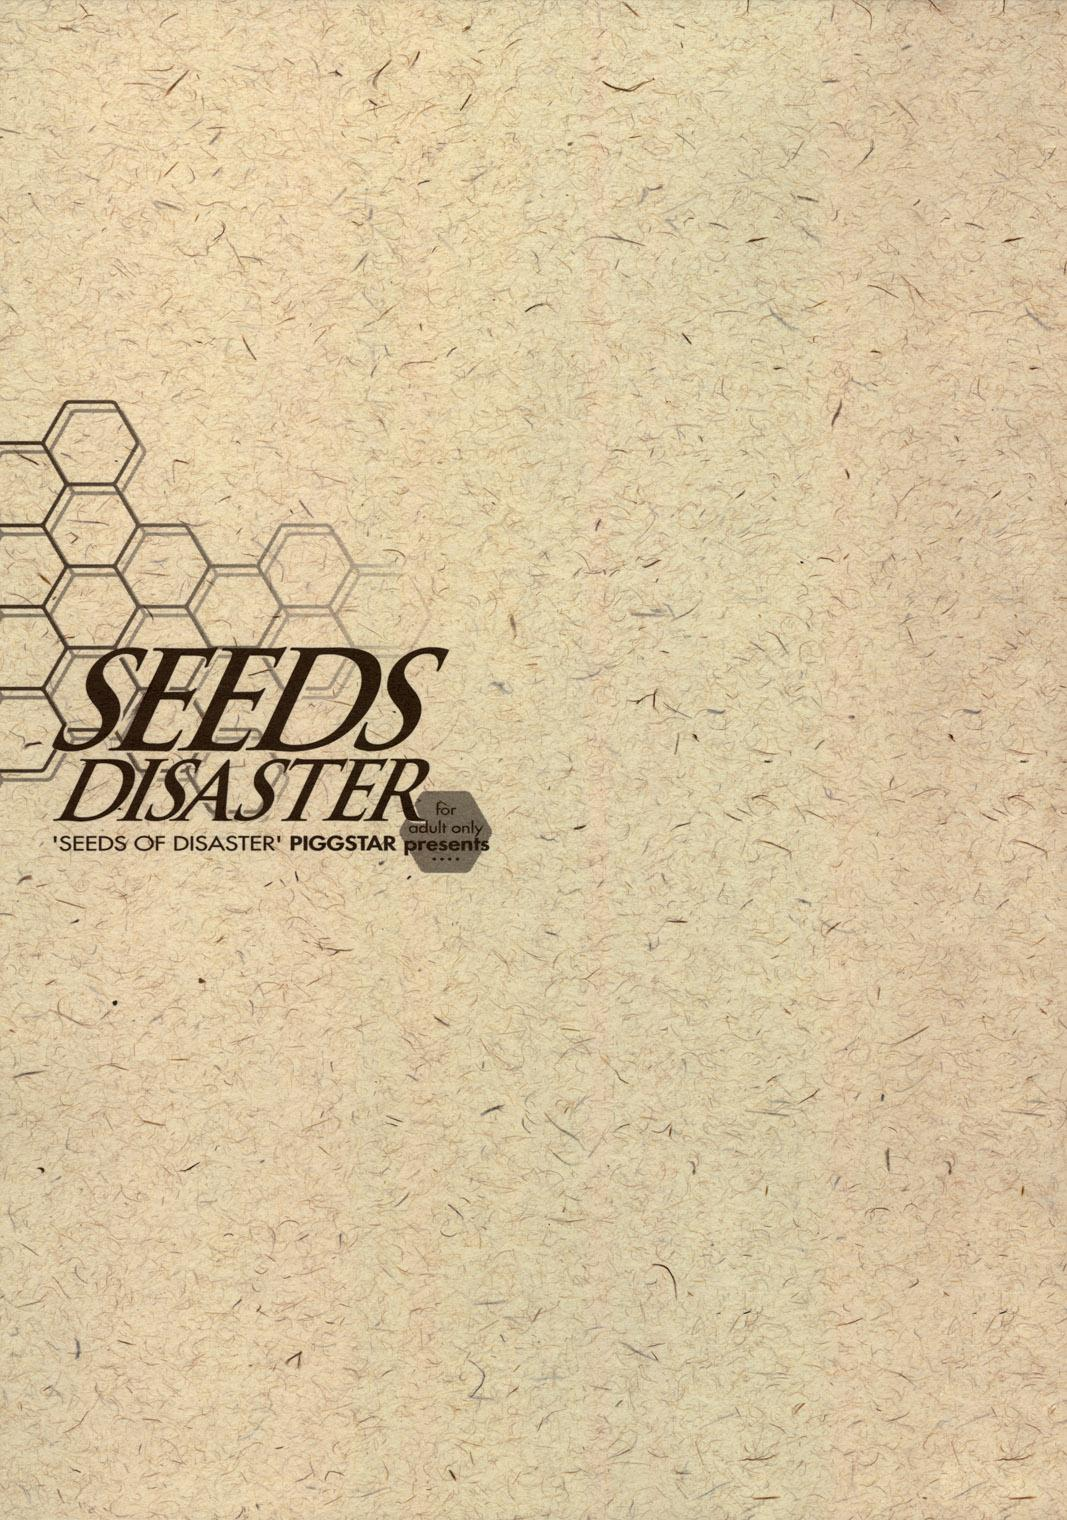 SEEDS OF DISASTER 1